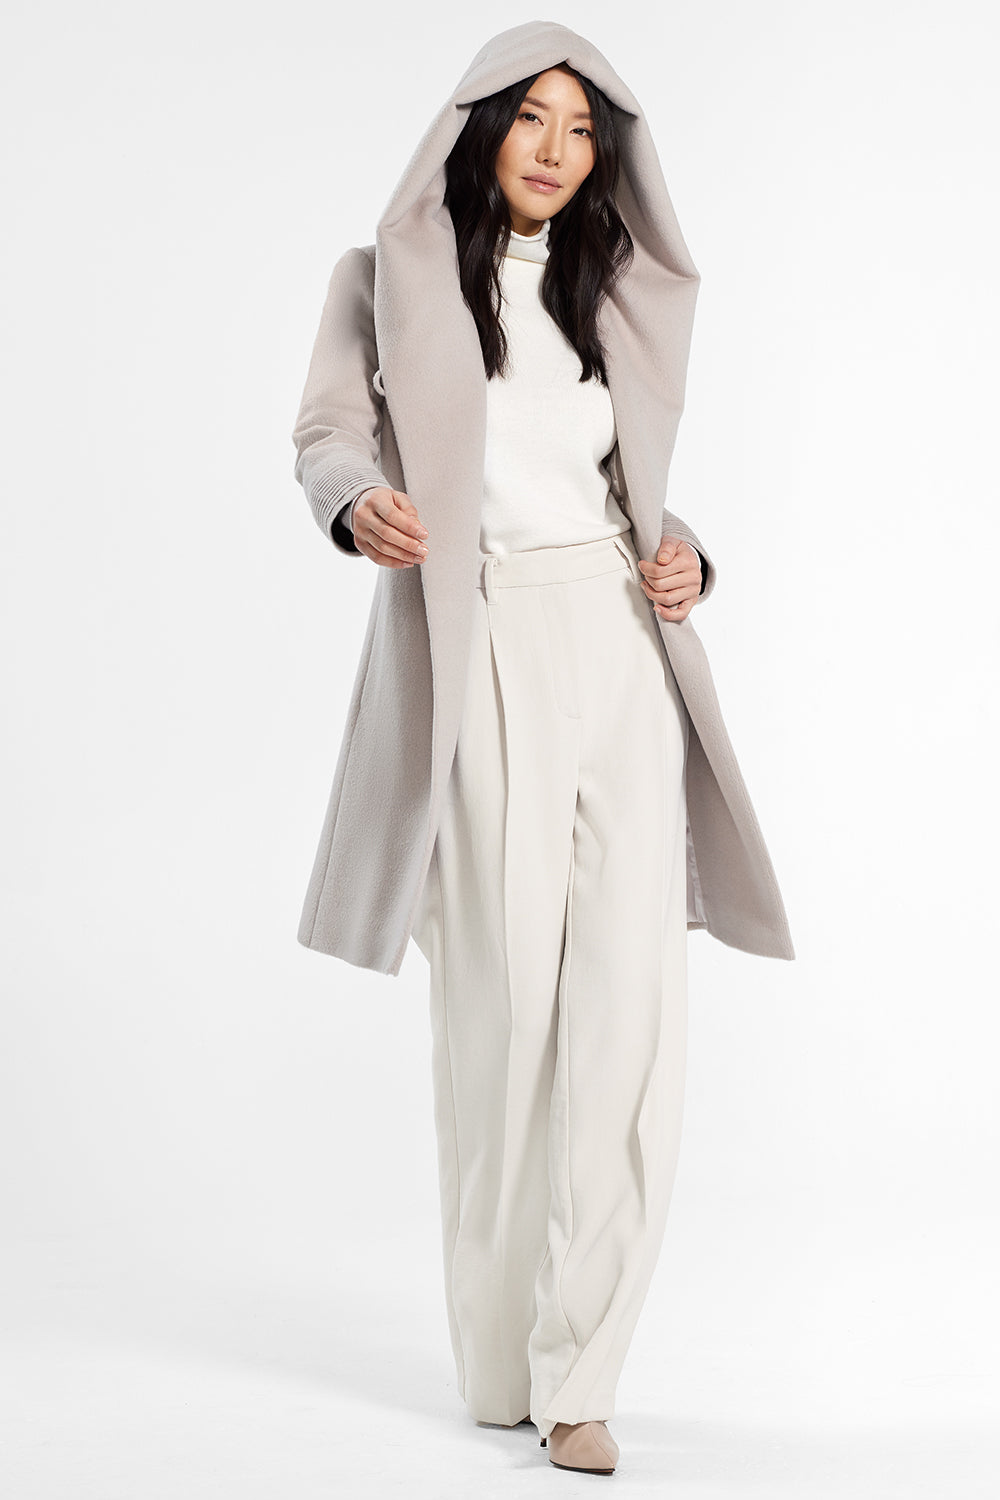 Sentaler Mid Length Hooded Wrap Coat featured in Baby Alpaca and available in Bleeker Beige. Seen open.